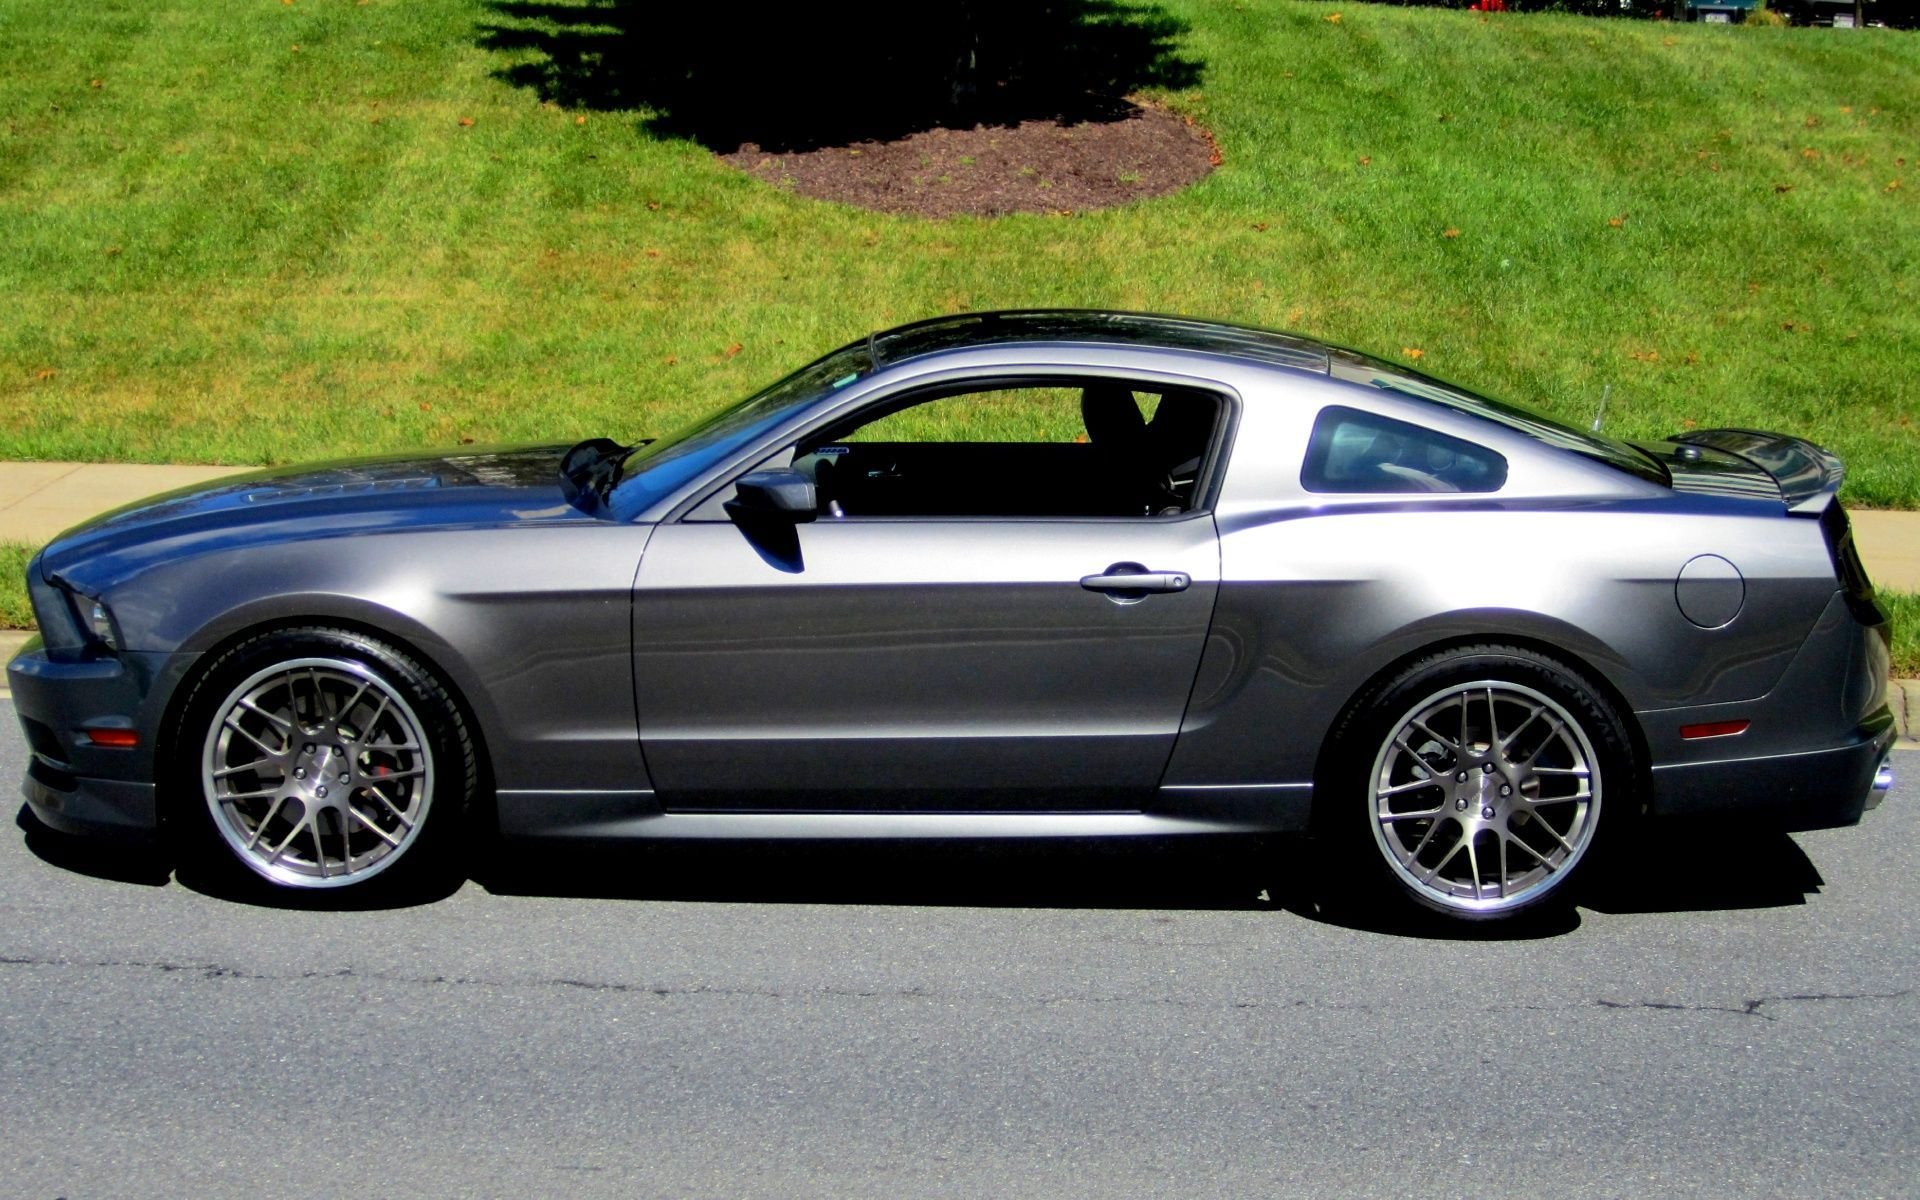 Flemings Ultimate Garage - :: 2013 Ford Mustang GT Supercharged ...